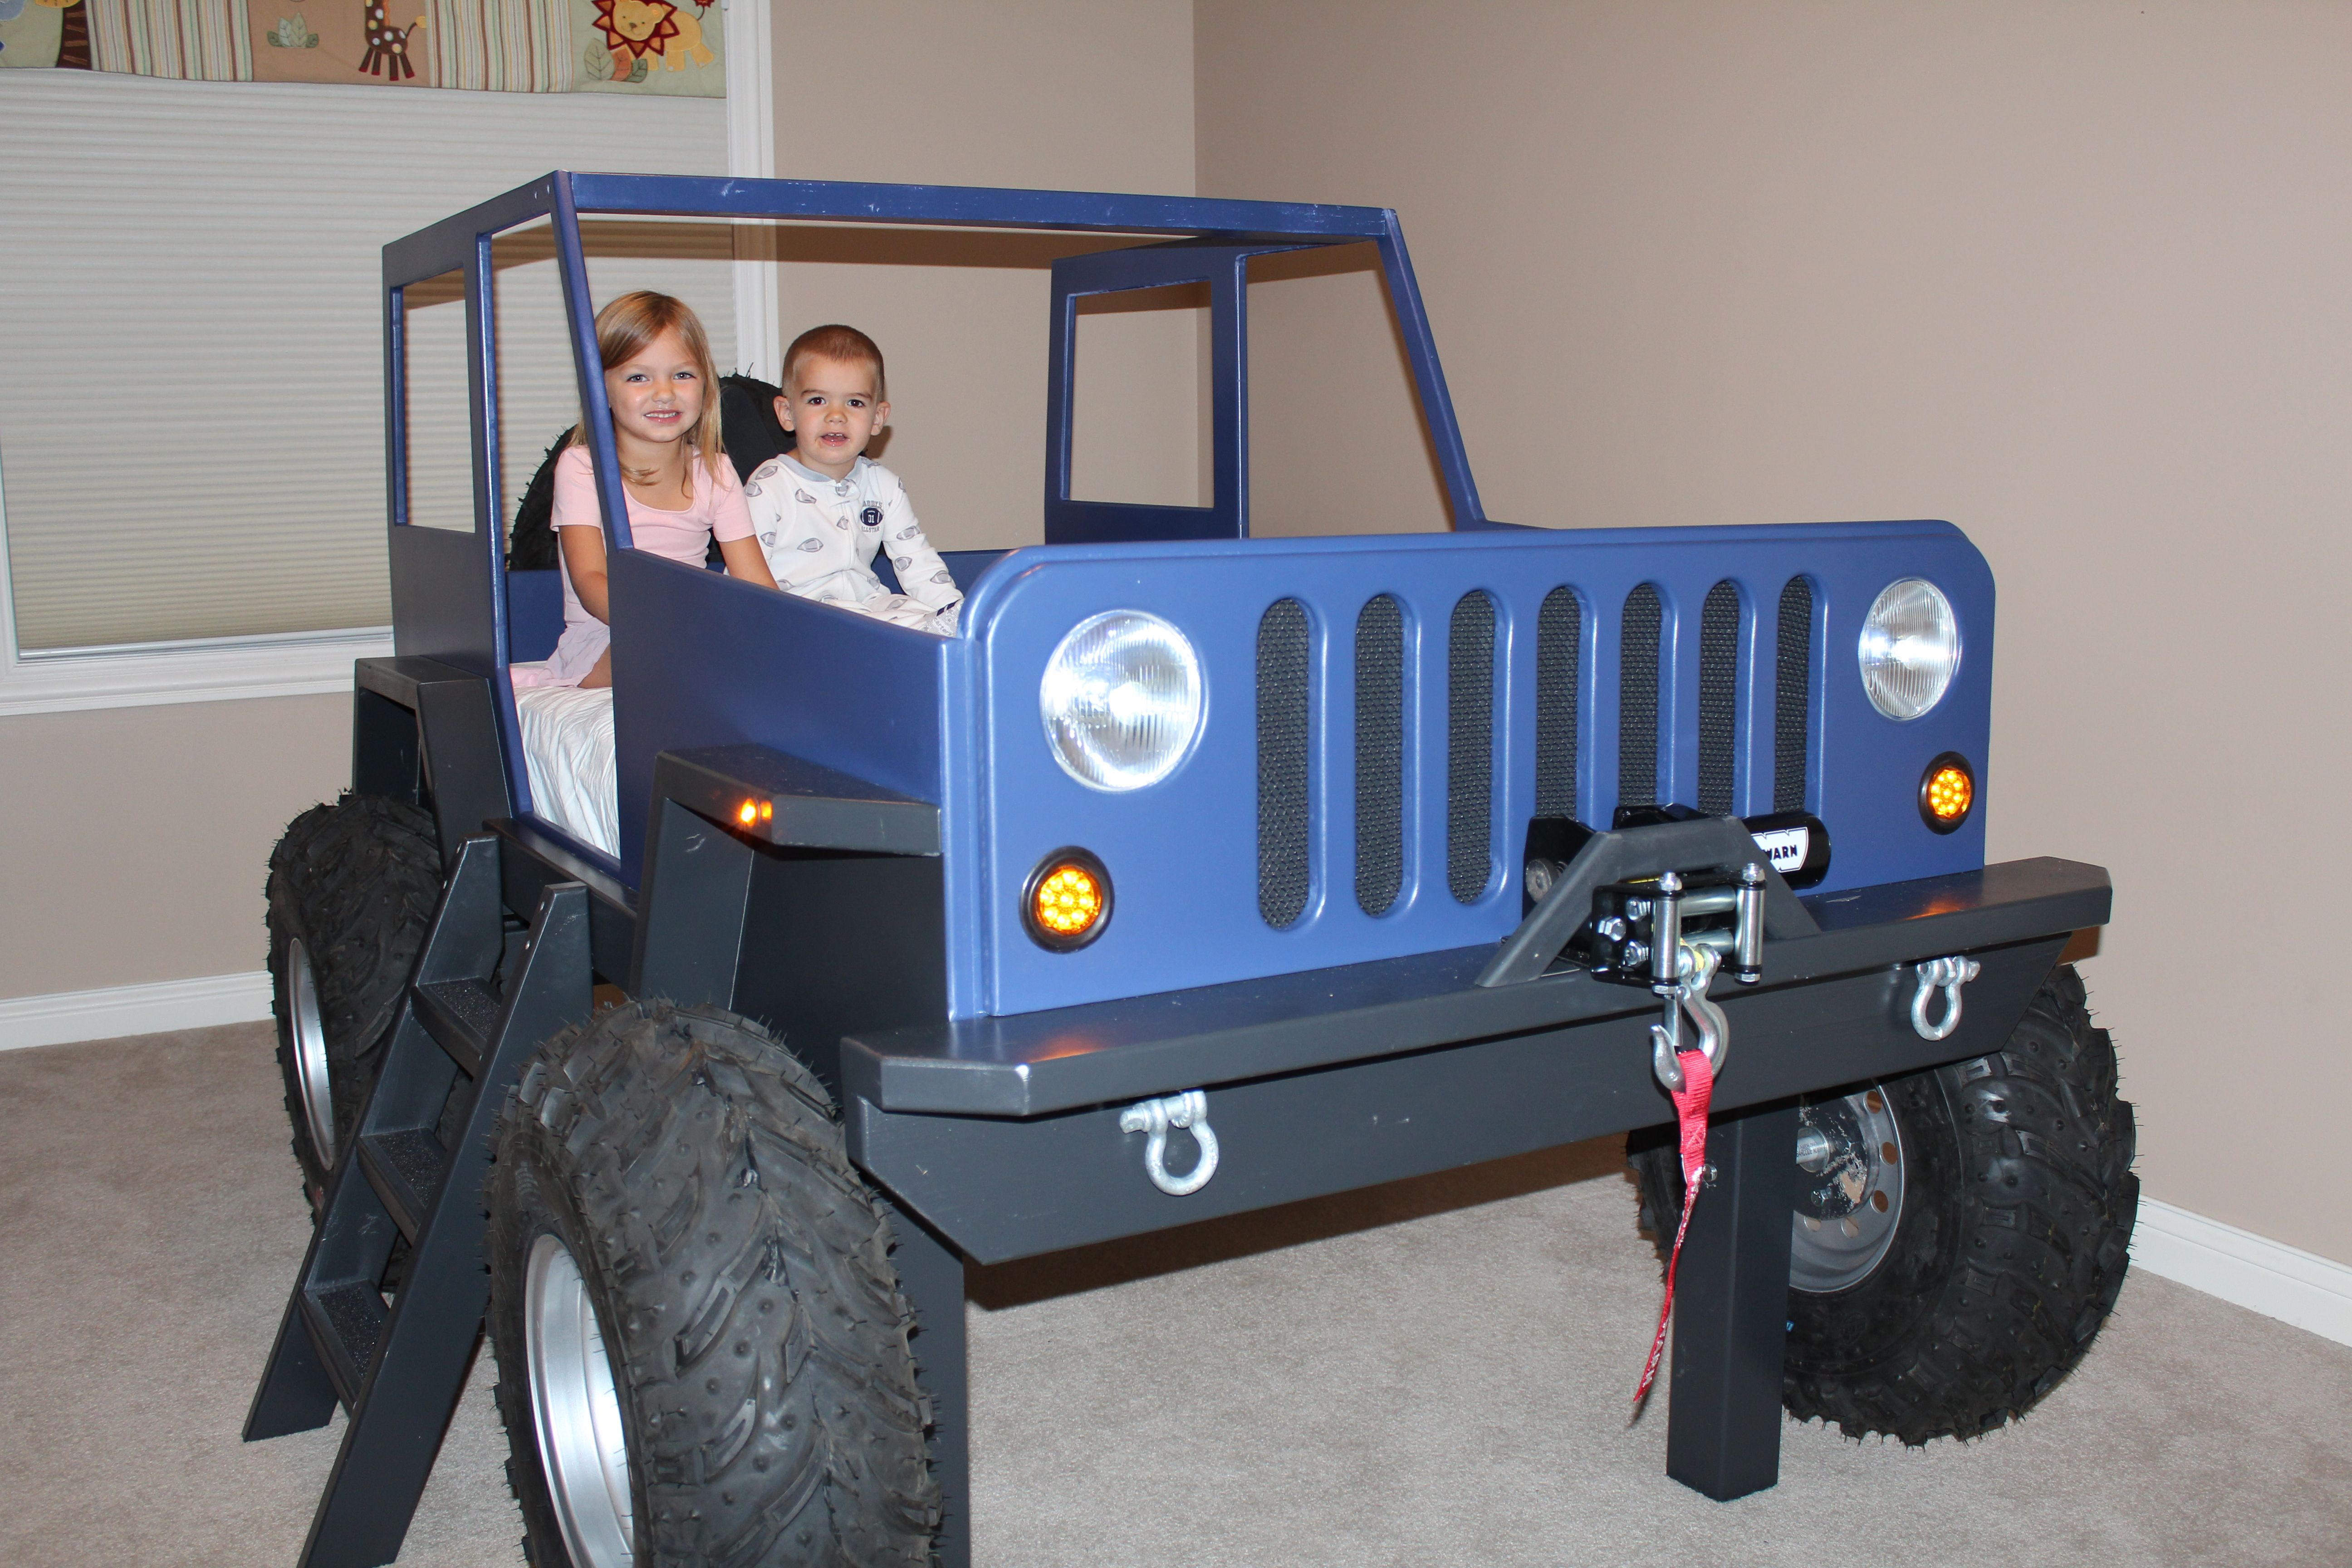 Pin by Stephanie Forck on Kids in 2019 | Pinterest | Jeep bed, Kid